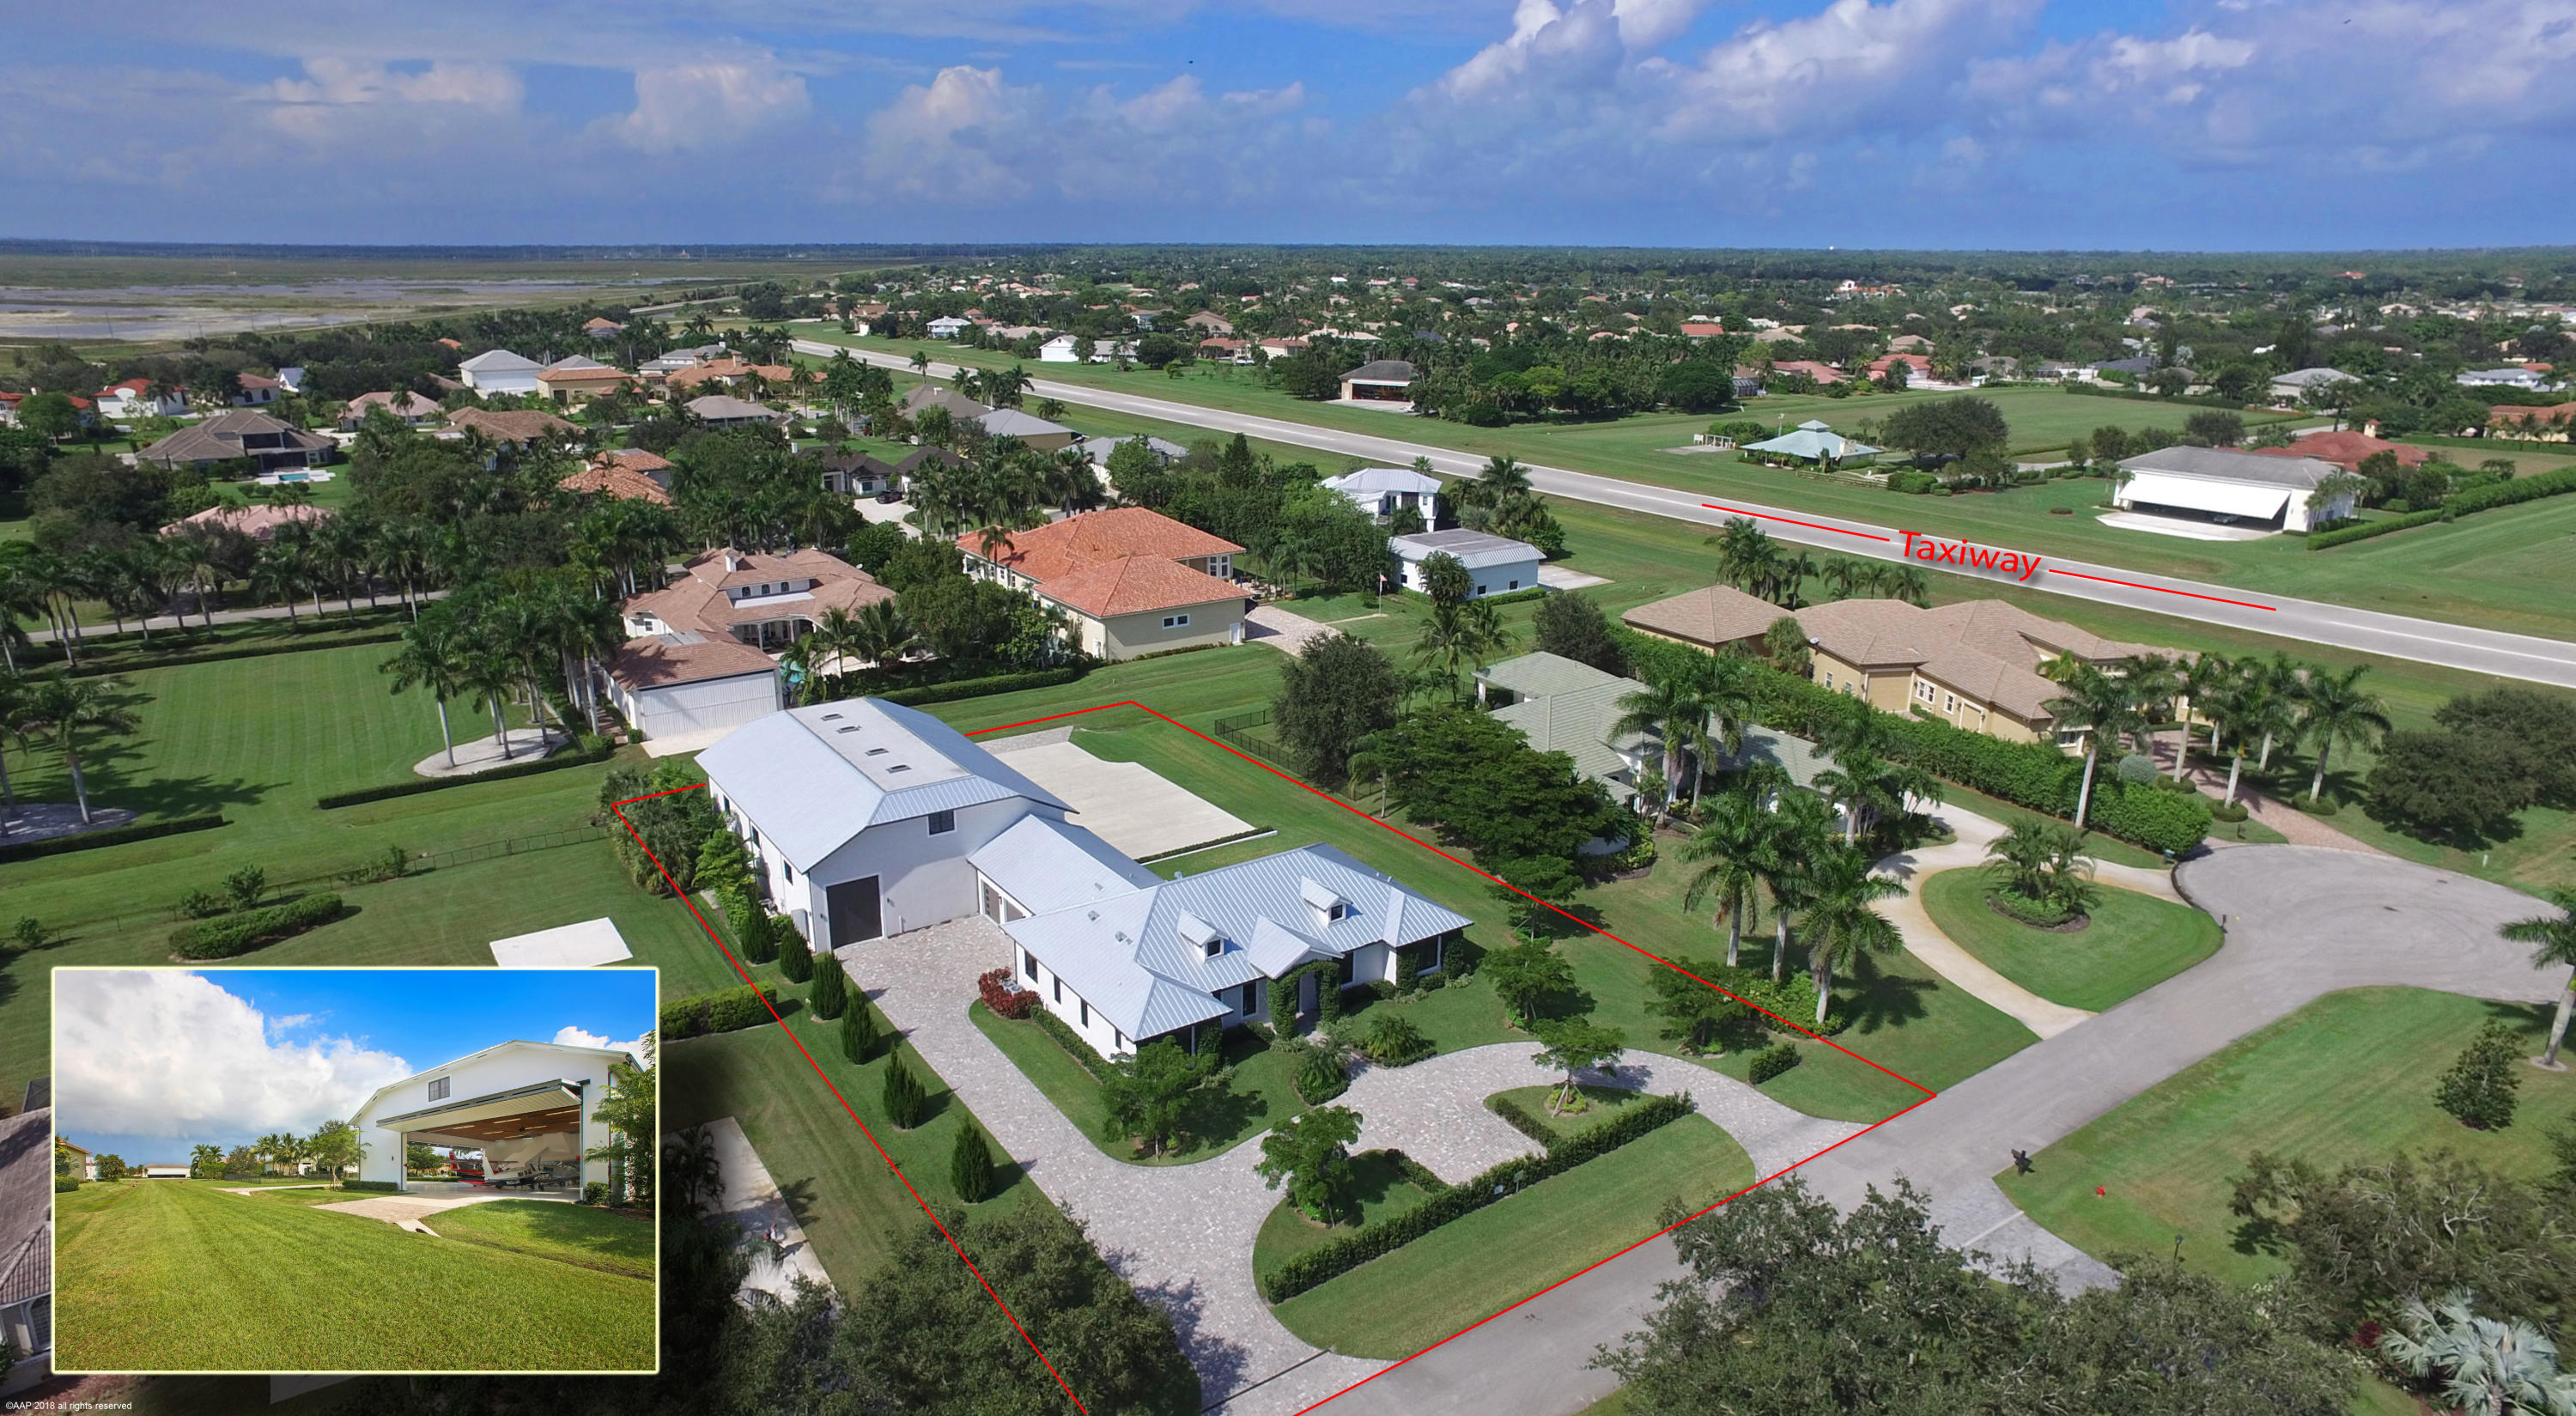 15755 Boeing Court - Wellington, Florida